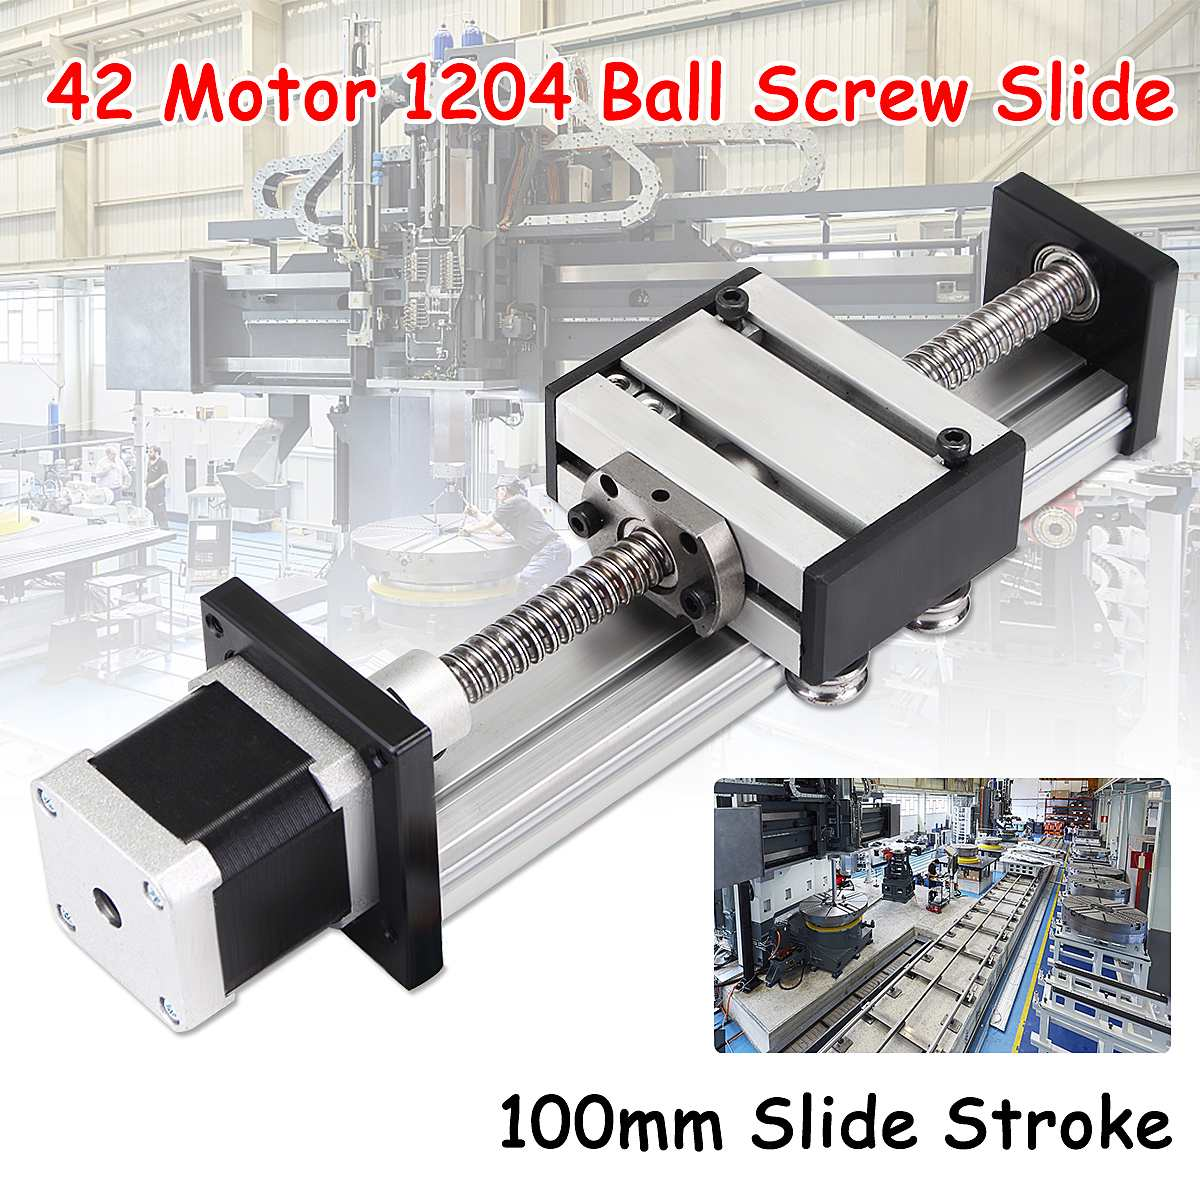 NEW 100mm Slide Stroke CNC Linear Motion Lead 1204 Ball Screw Slide Stage Stroke 42 Motor Actuator Stepper For Engraving Machine funssor 50mm 150mm slide stroke cnc z axis slide linear motion nema17 stepper motor for reprap engraving machine